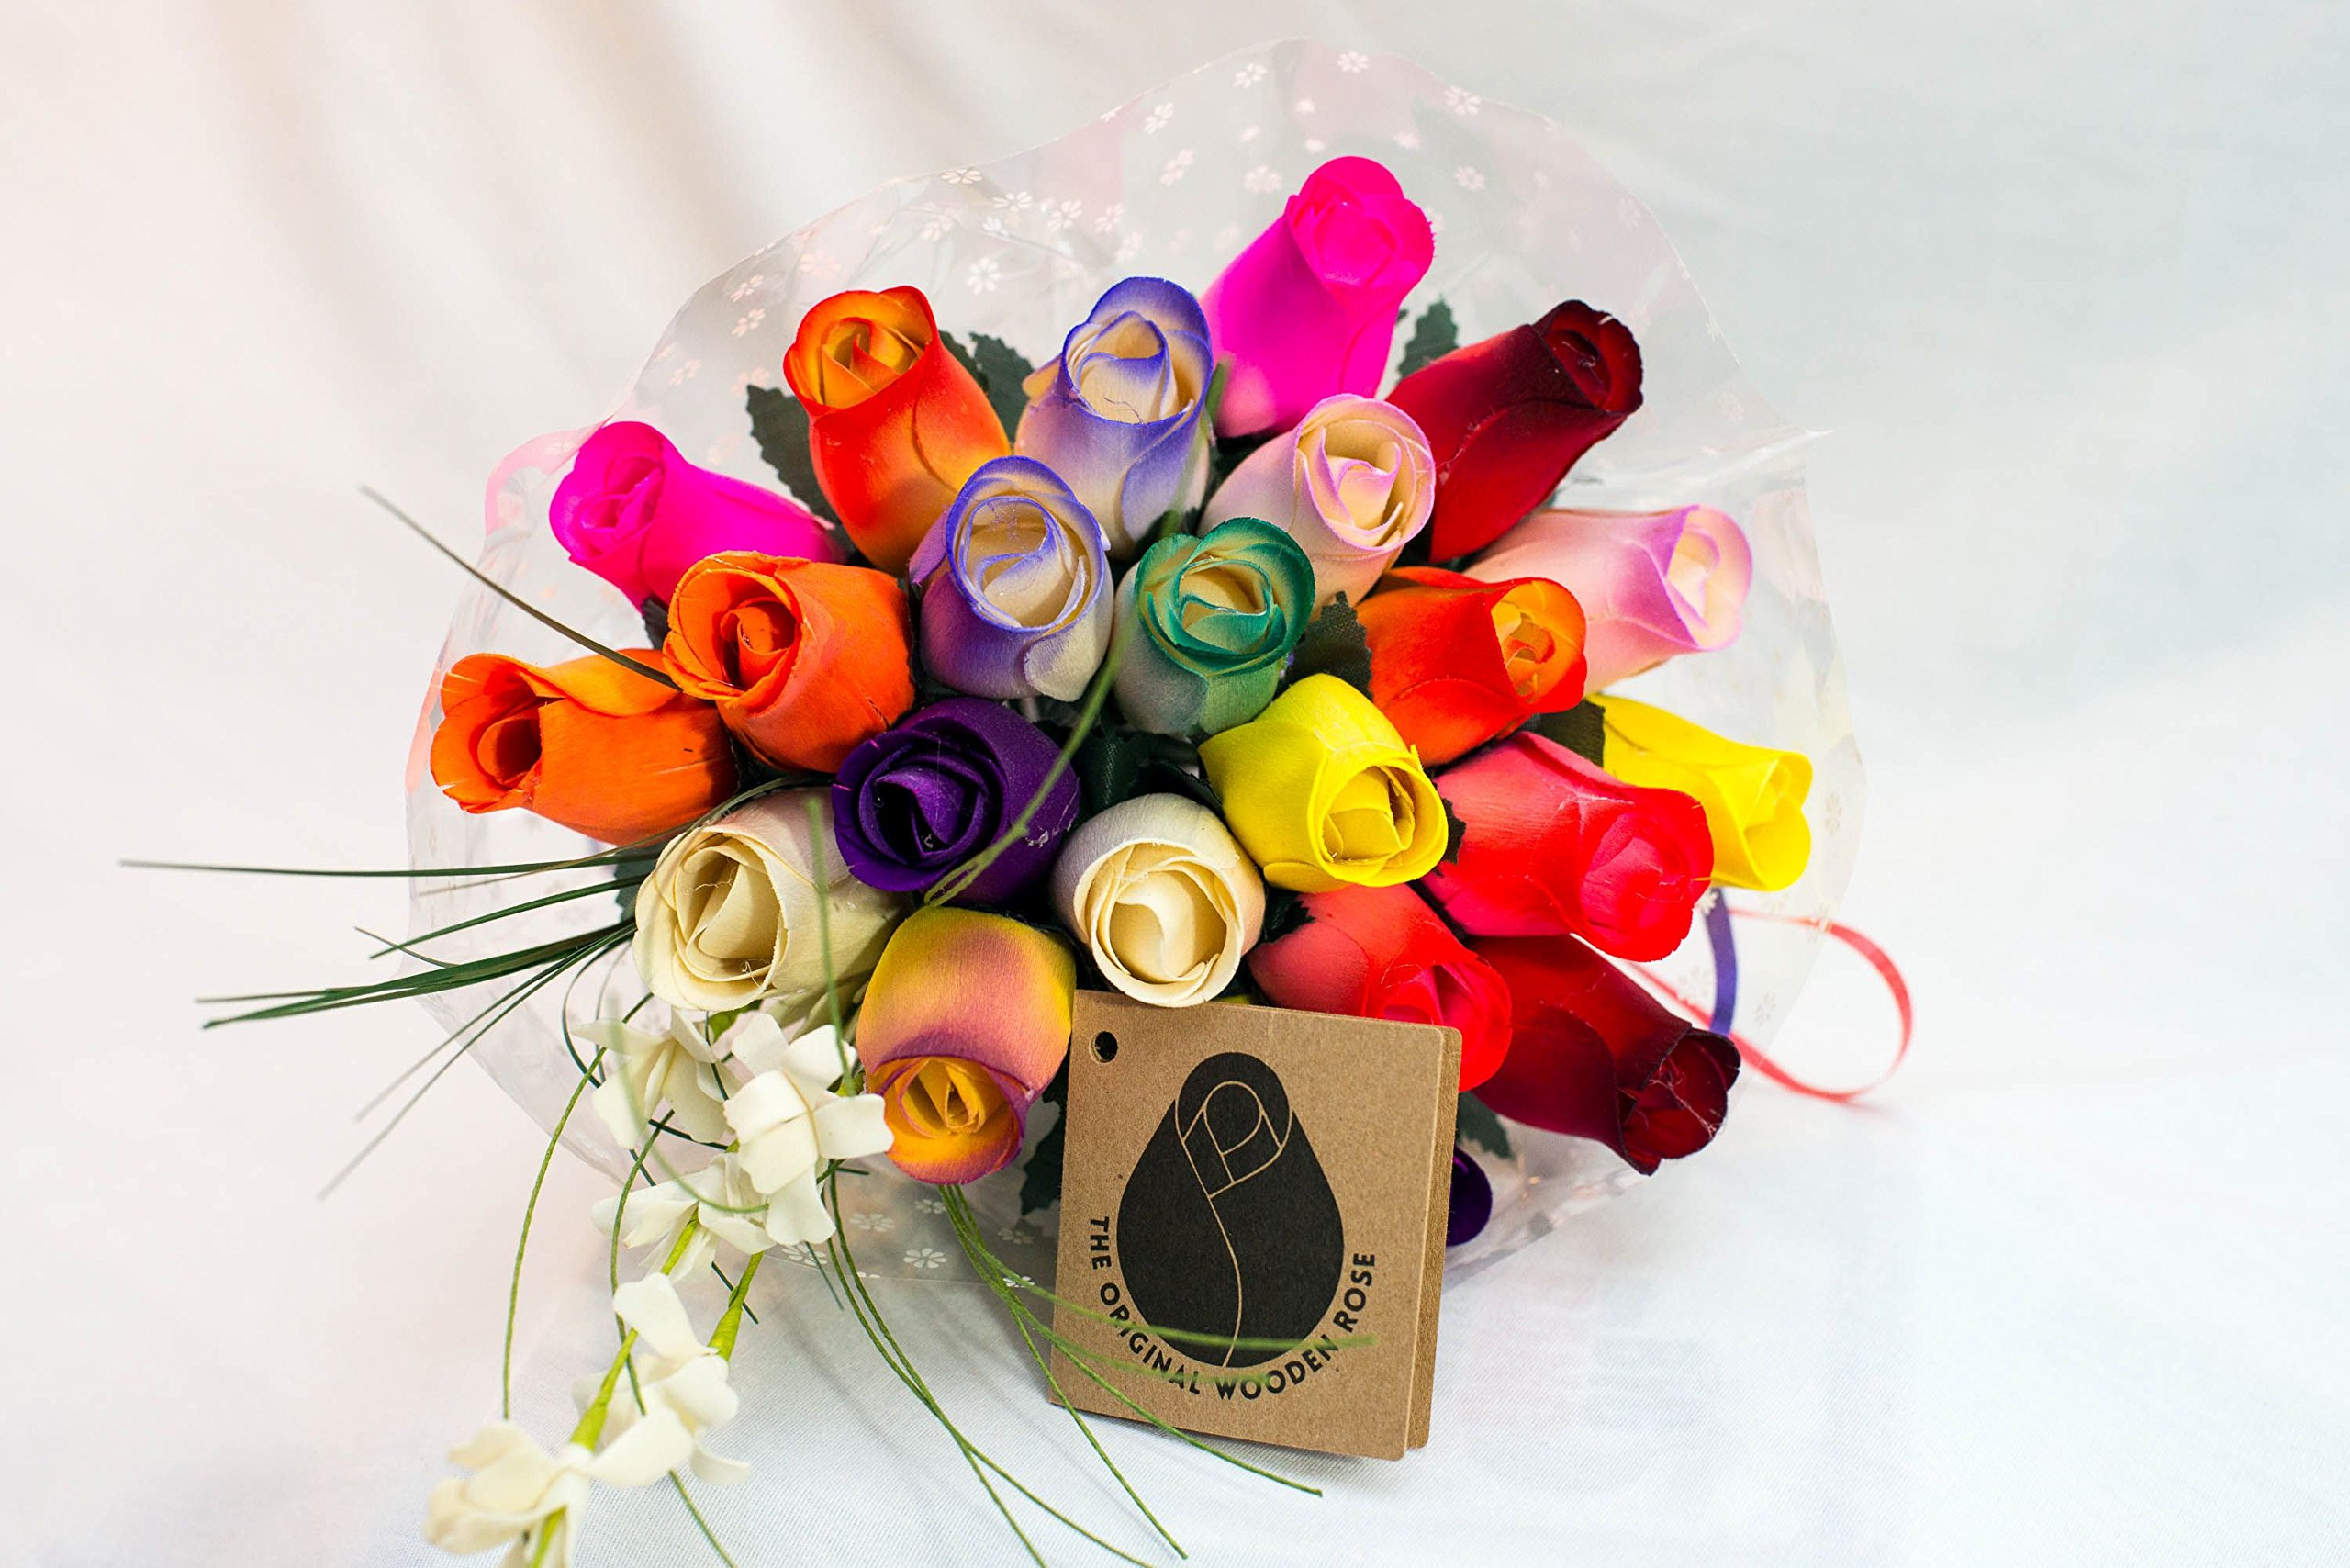 The-Original-Wooden-Rose-Bouquets-in-1-2-or-3-Dozen